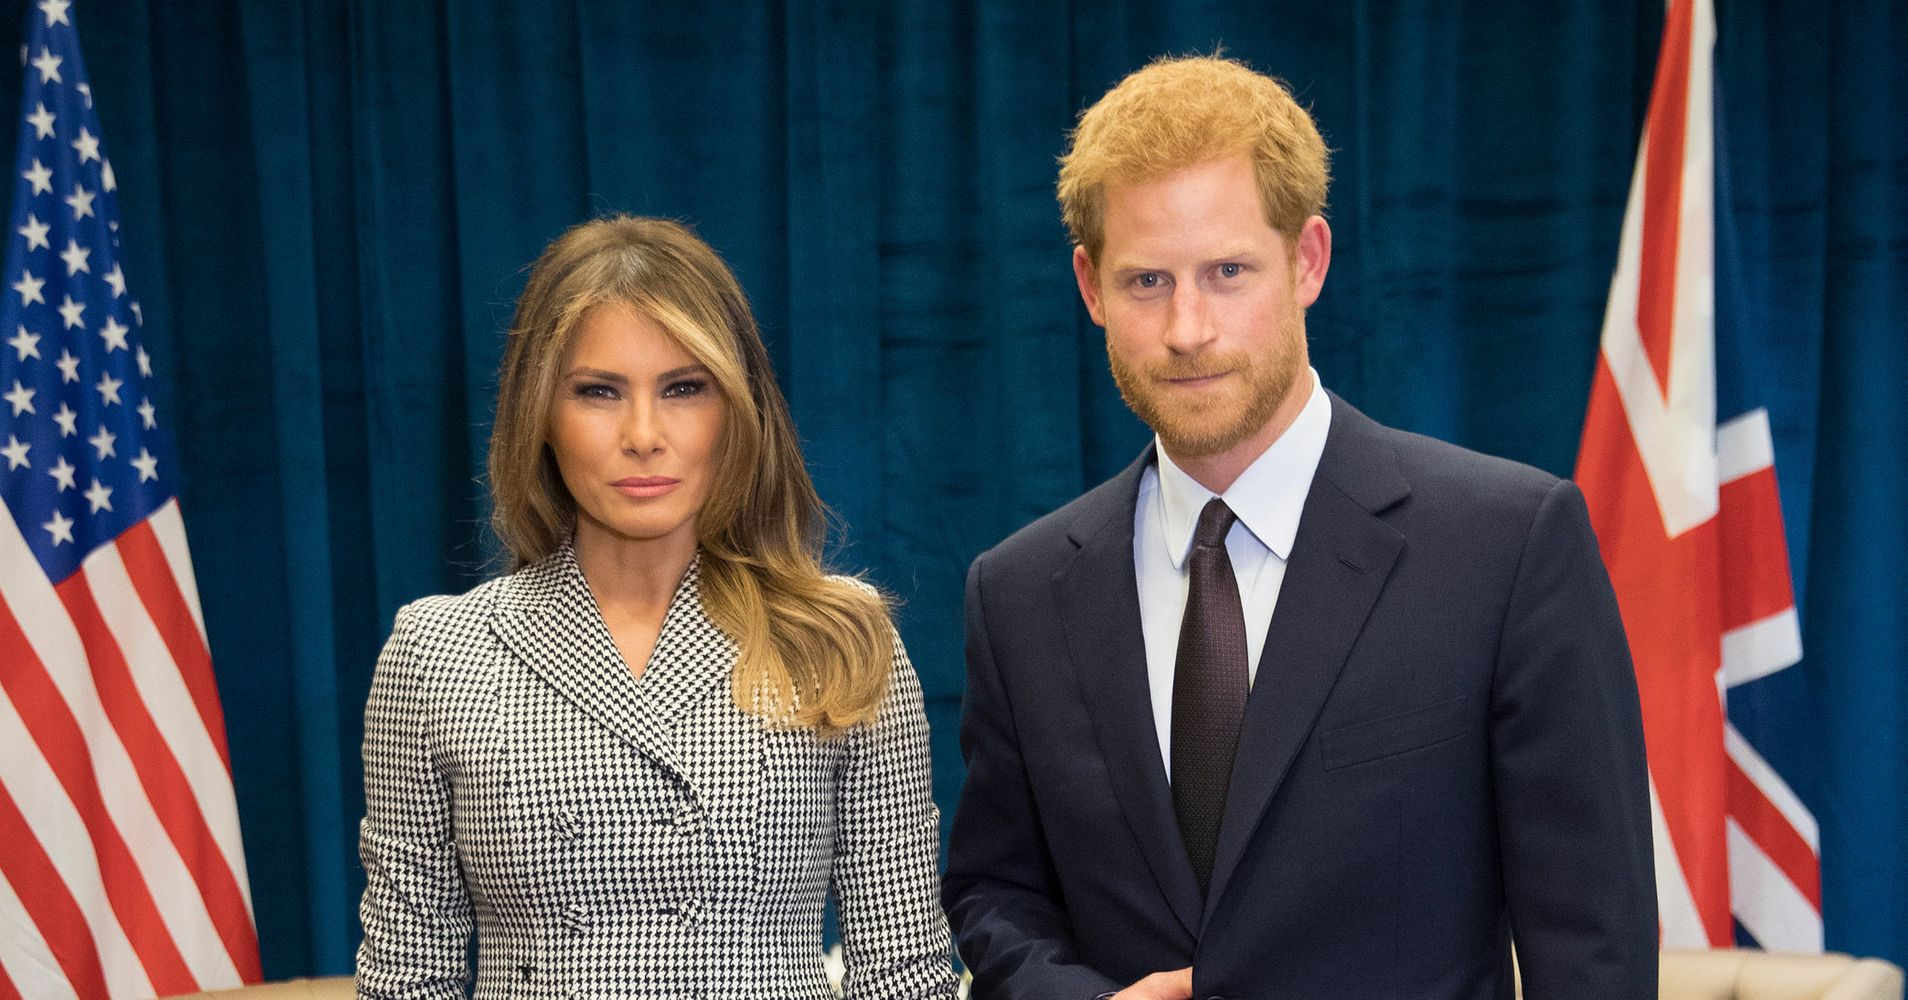 Body language experts explain prince harrys strange pose with body language experts explain prince harrys strange pose with melania trump huffpost buycottarizona